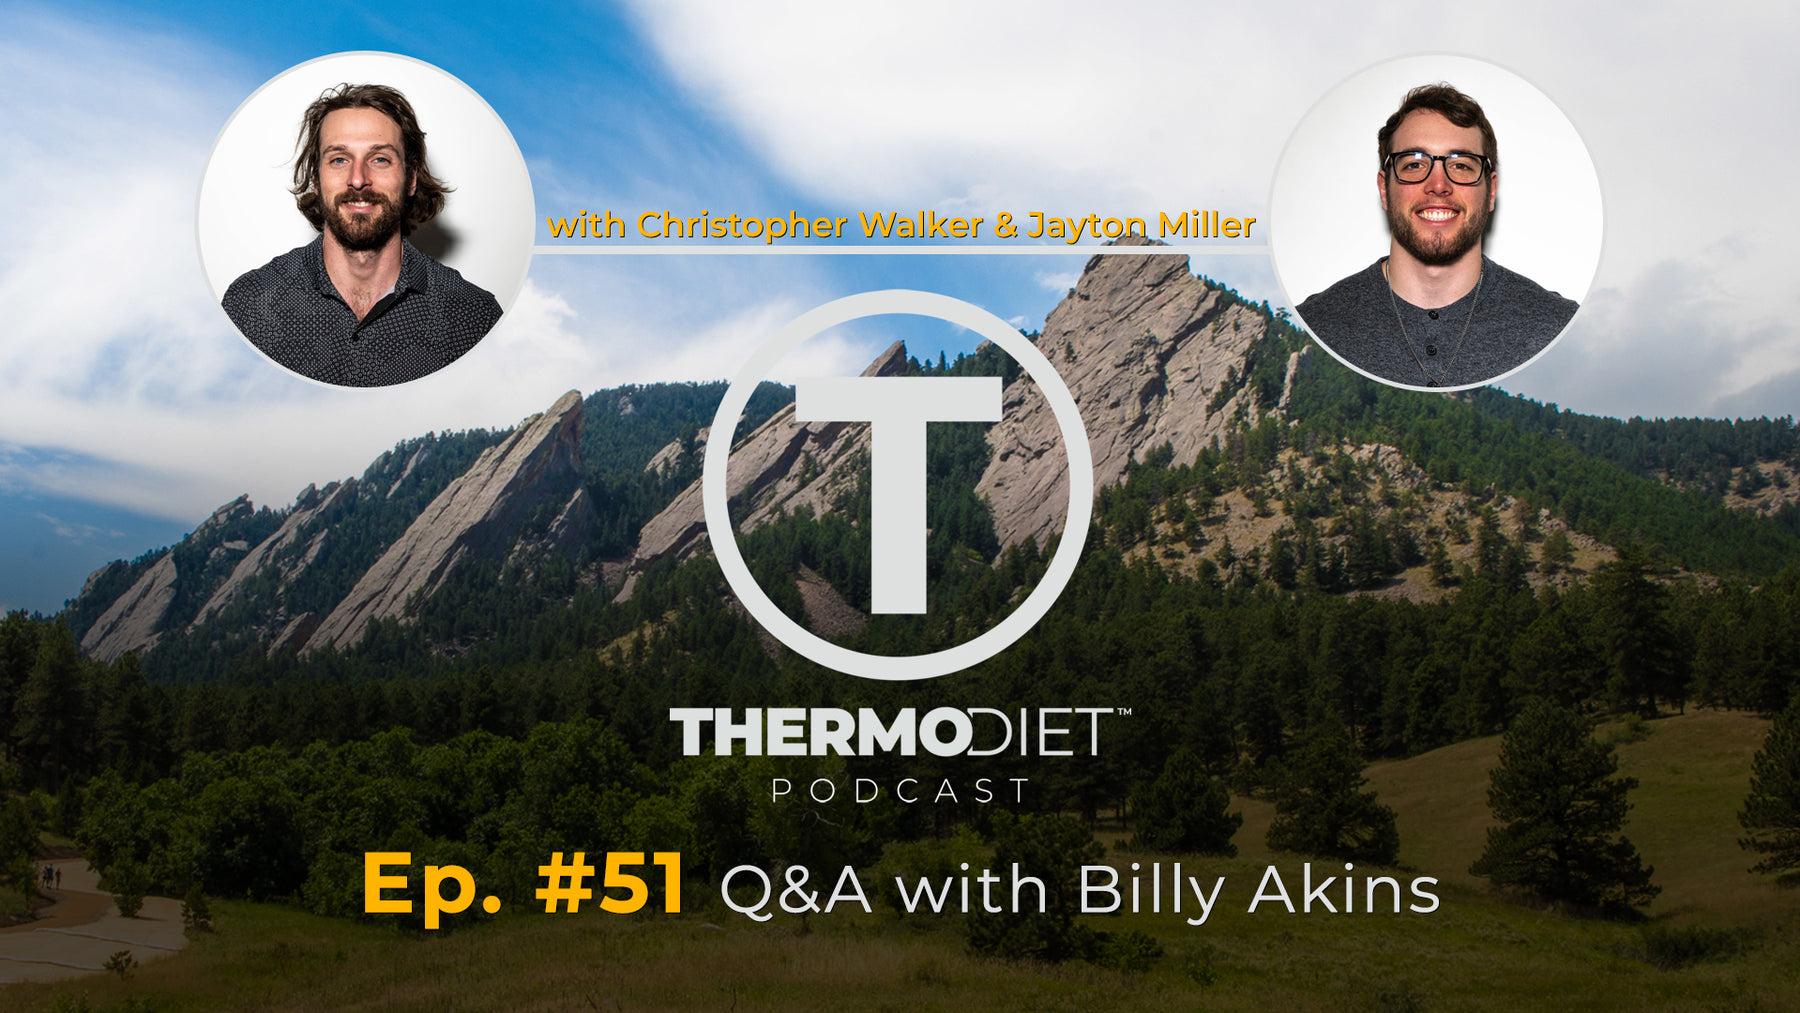 The Thermo Diet Podcast Episode 51 - Billy Akins